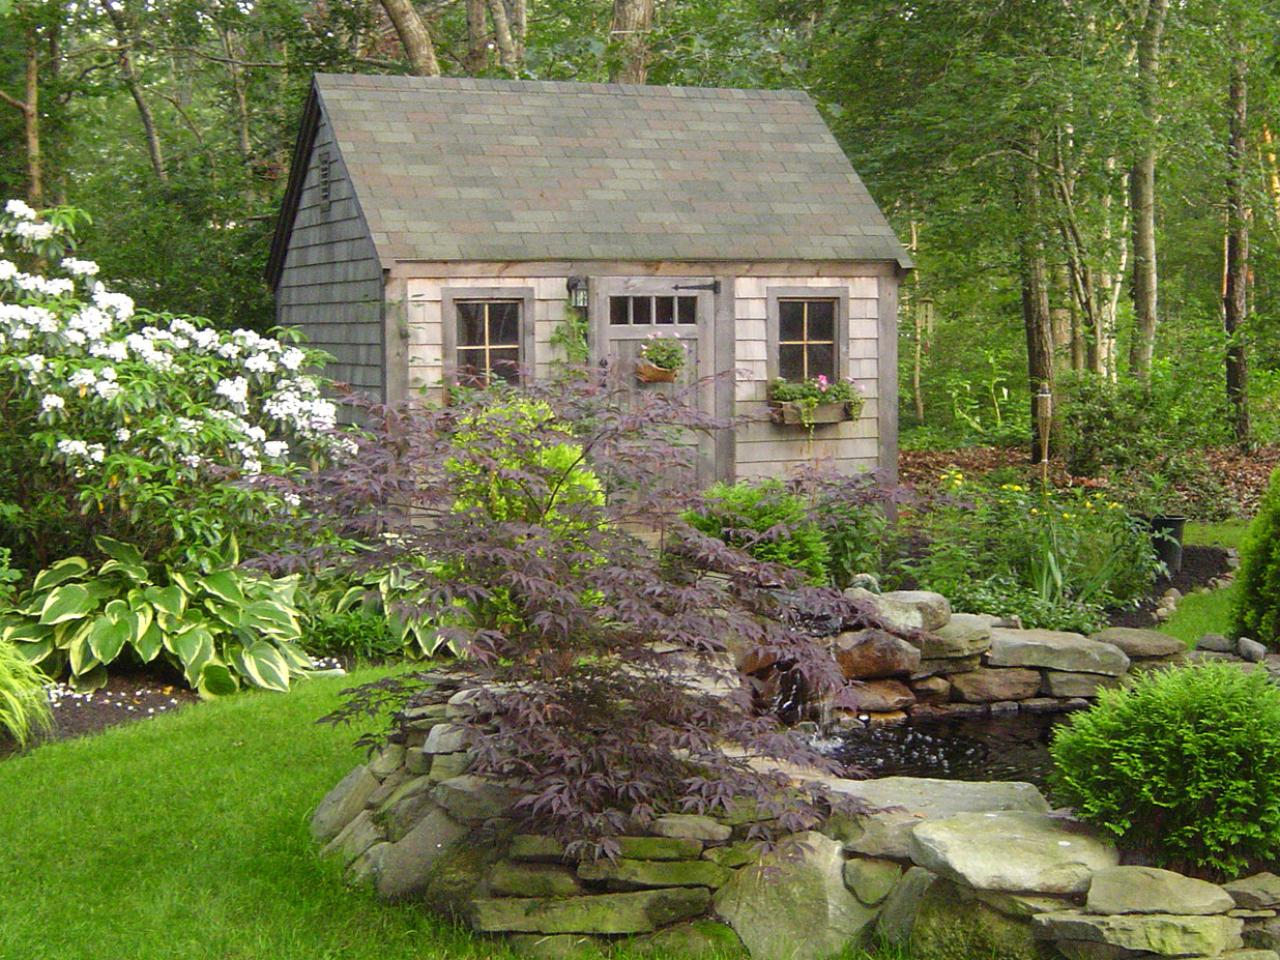 Fairytale-garden-shed-in-an-obscured-place